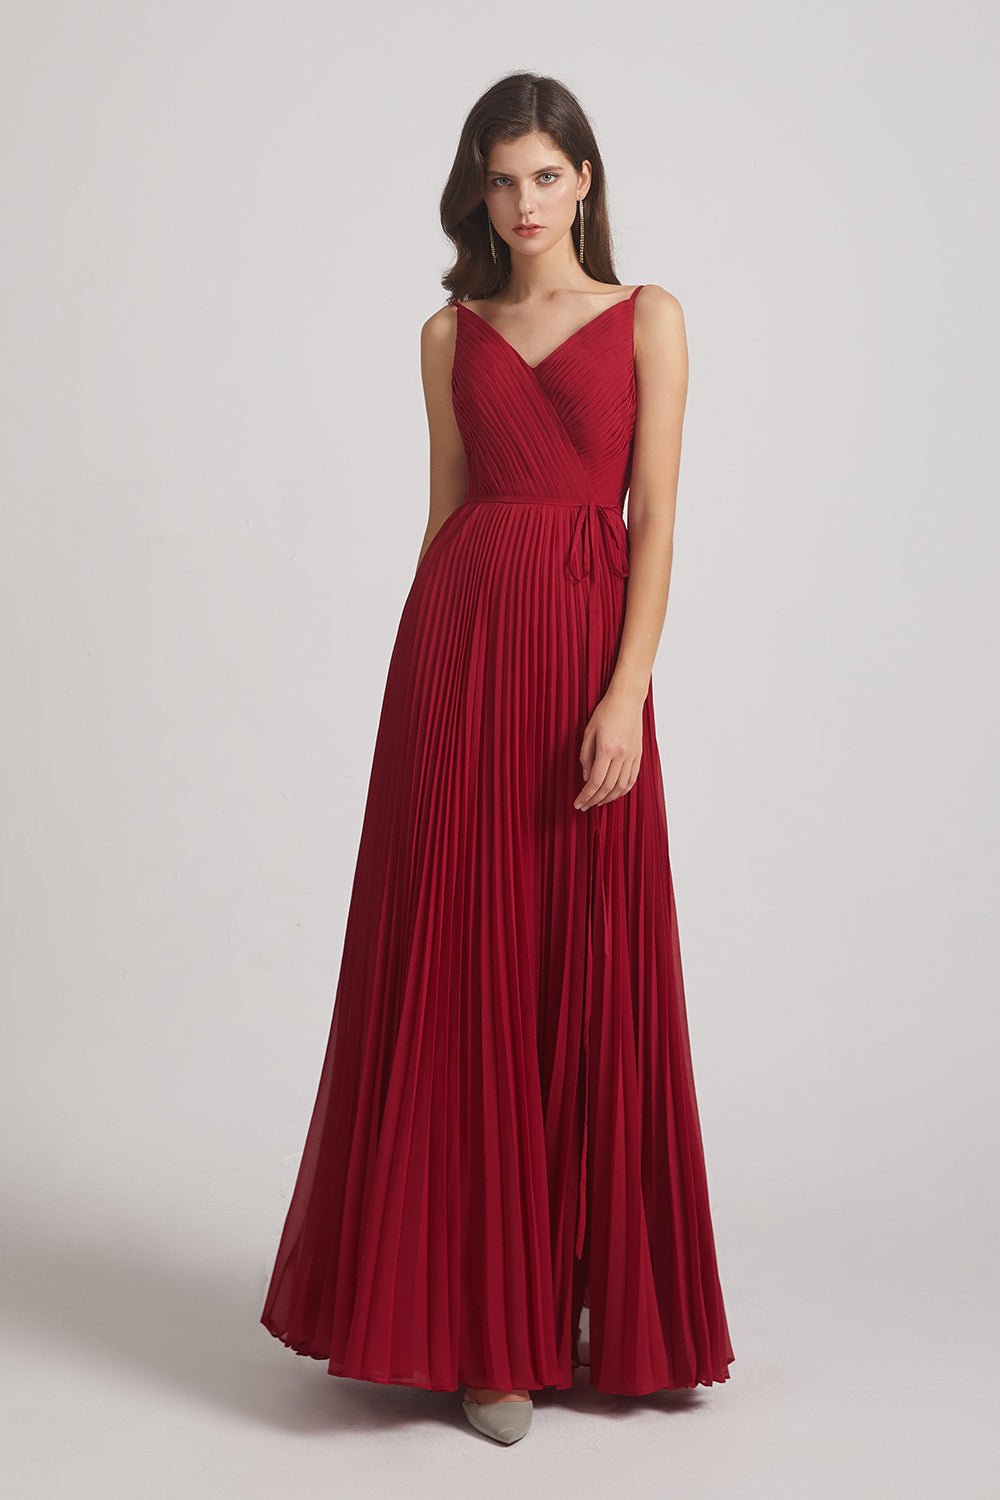 red ruched a-line maid of honor dress